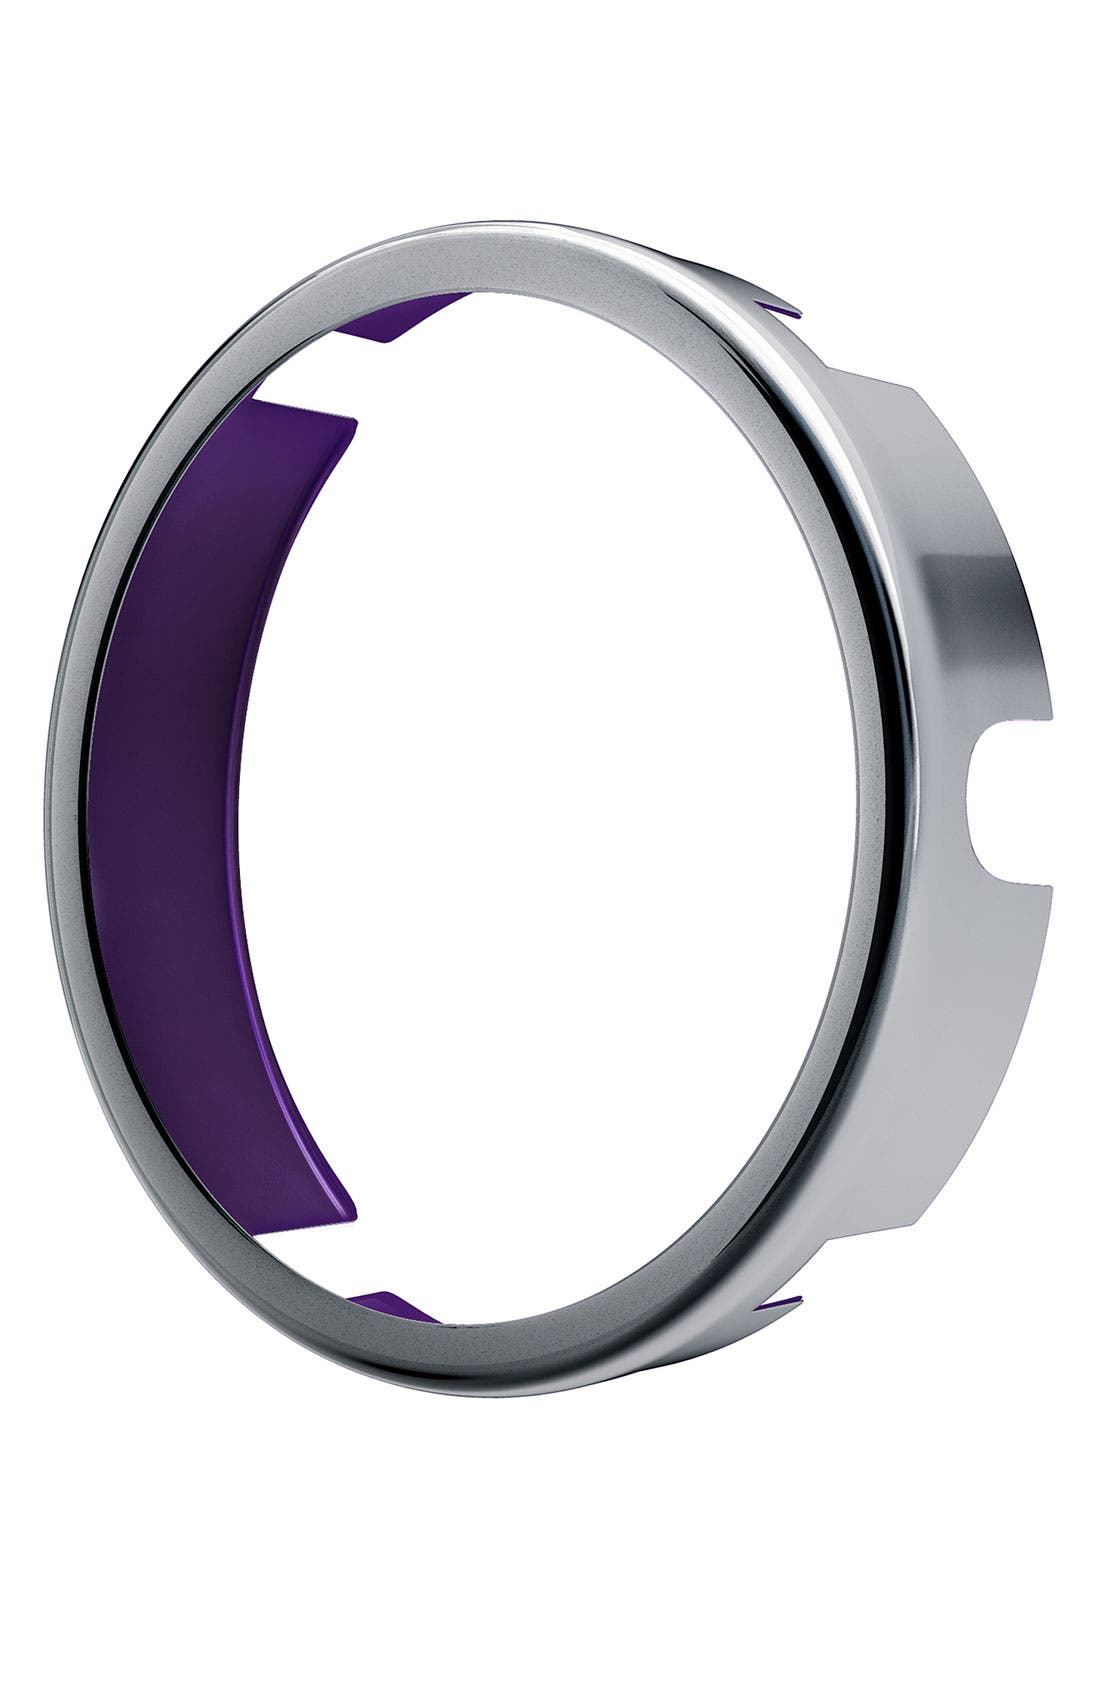 Alternate Image 1 Selected - Movado 'Bold' Metallic Watch Case Cover